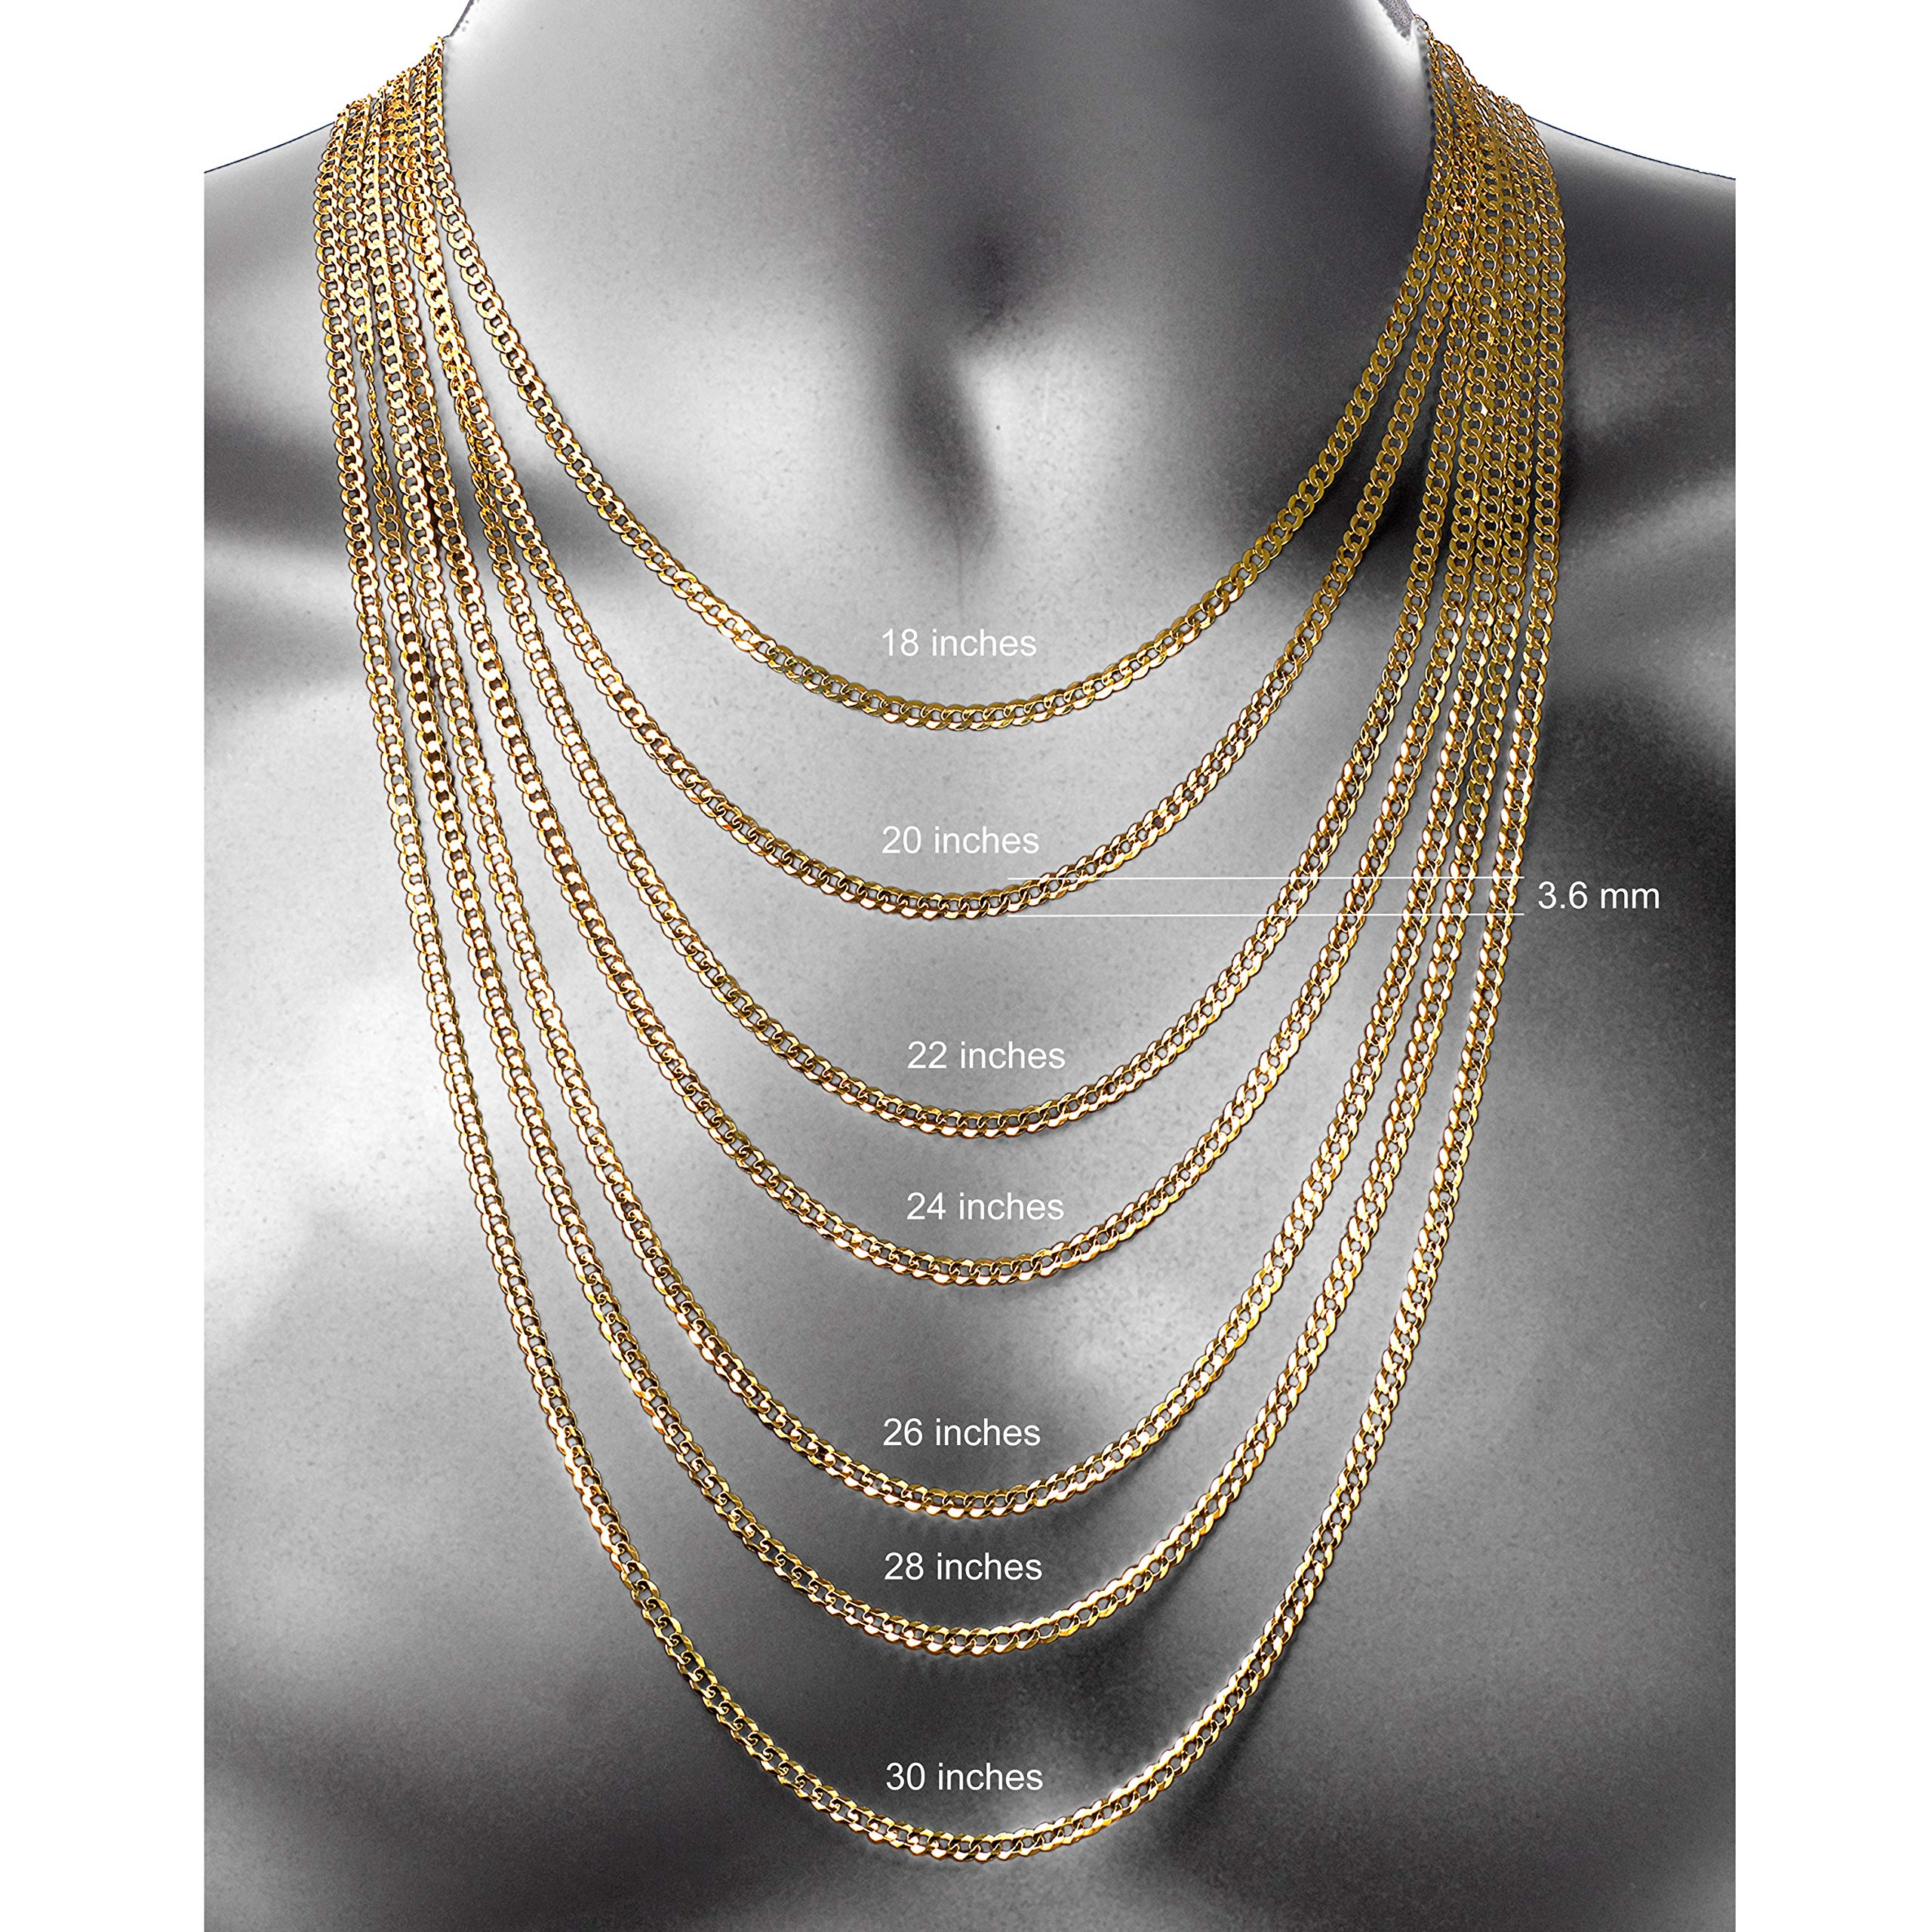 Pairfection 14K Yellow Solid Curb Gold with Lobster Clasp - 3.60 MM Wide 20 Inches Long Necklace by Pairfection (Image #4)